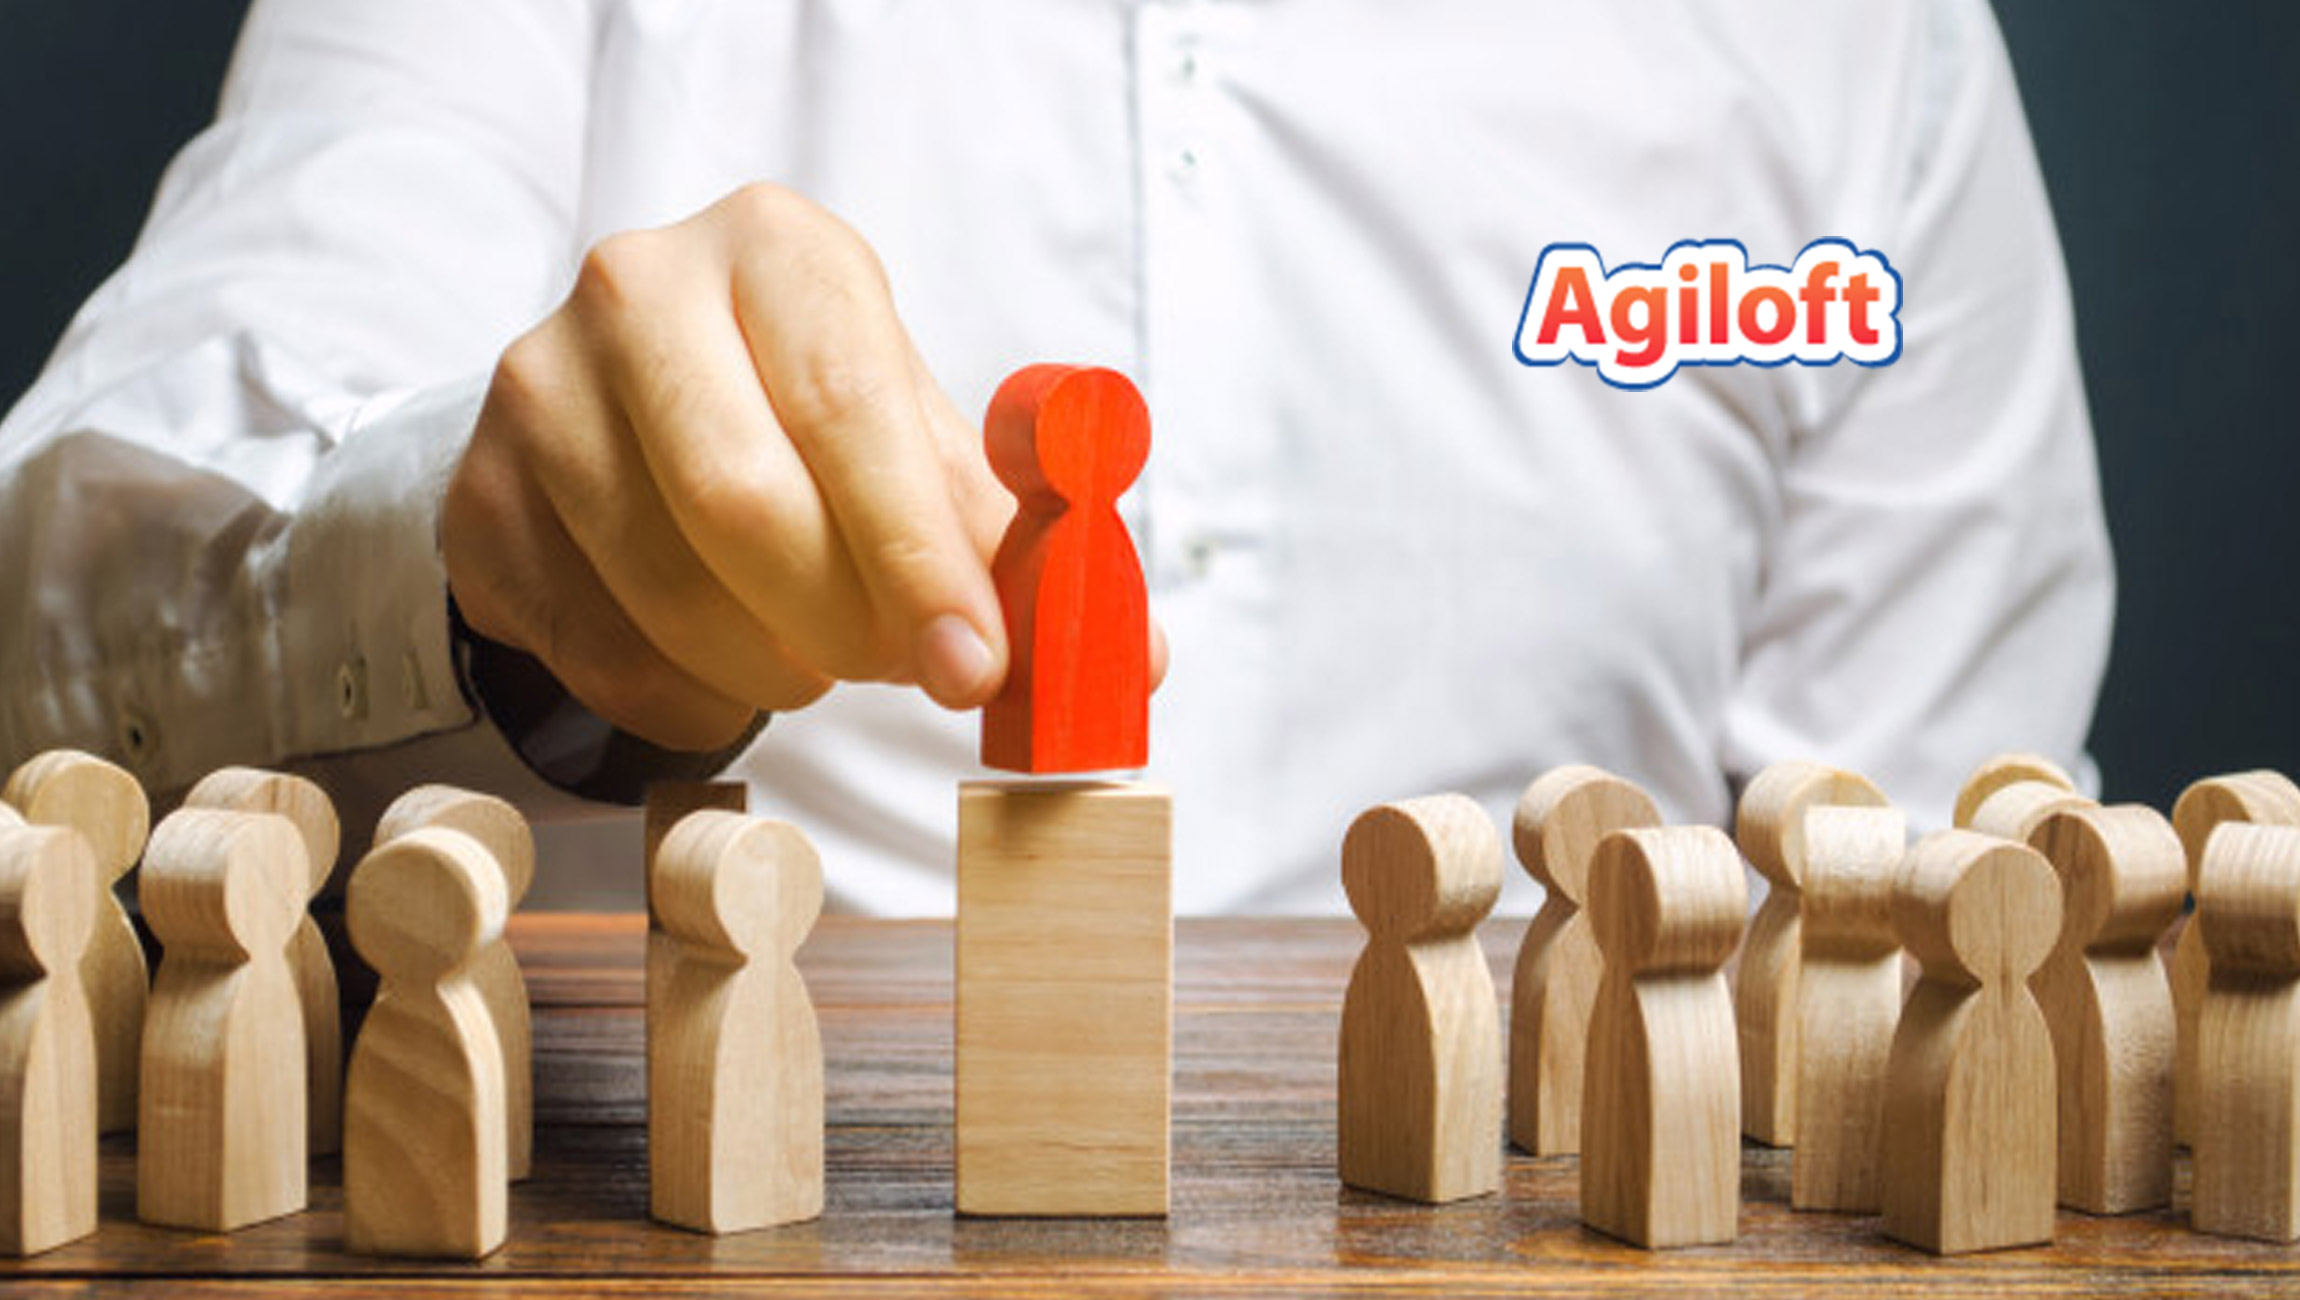 Agiloft Recognized as Value Leader and Customer Leader by Spend Matters